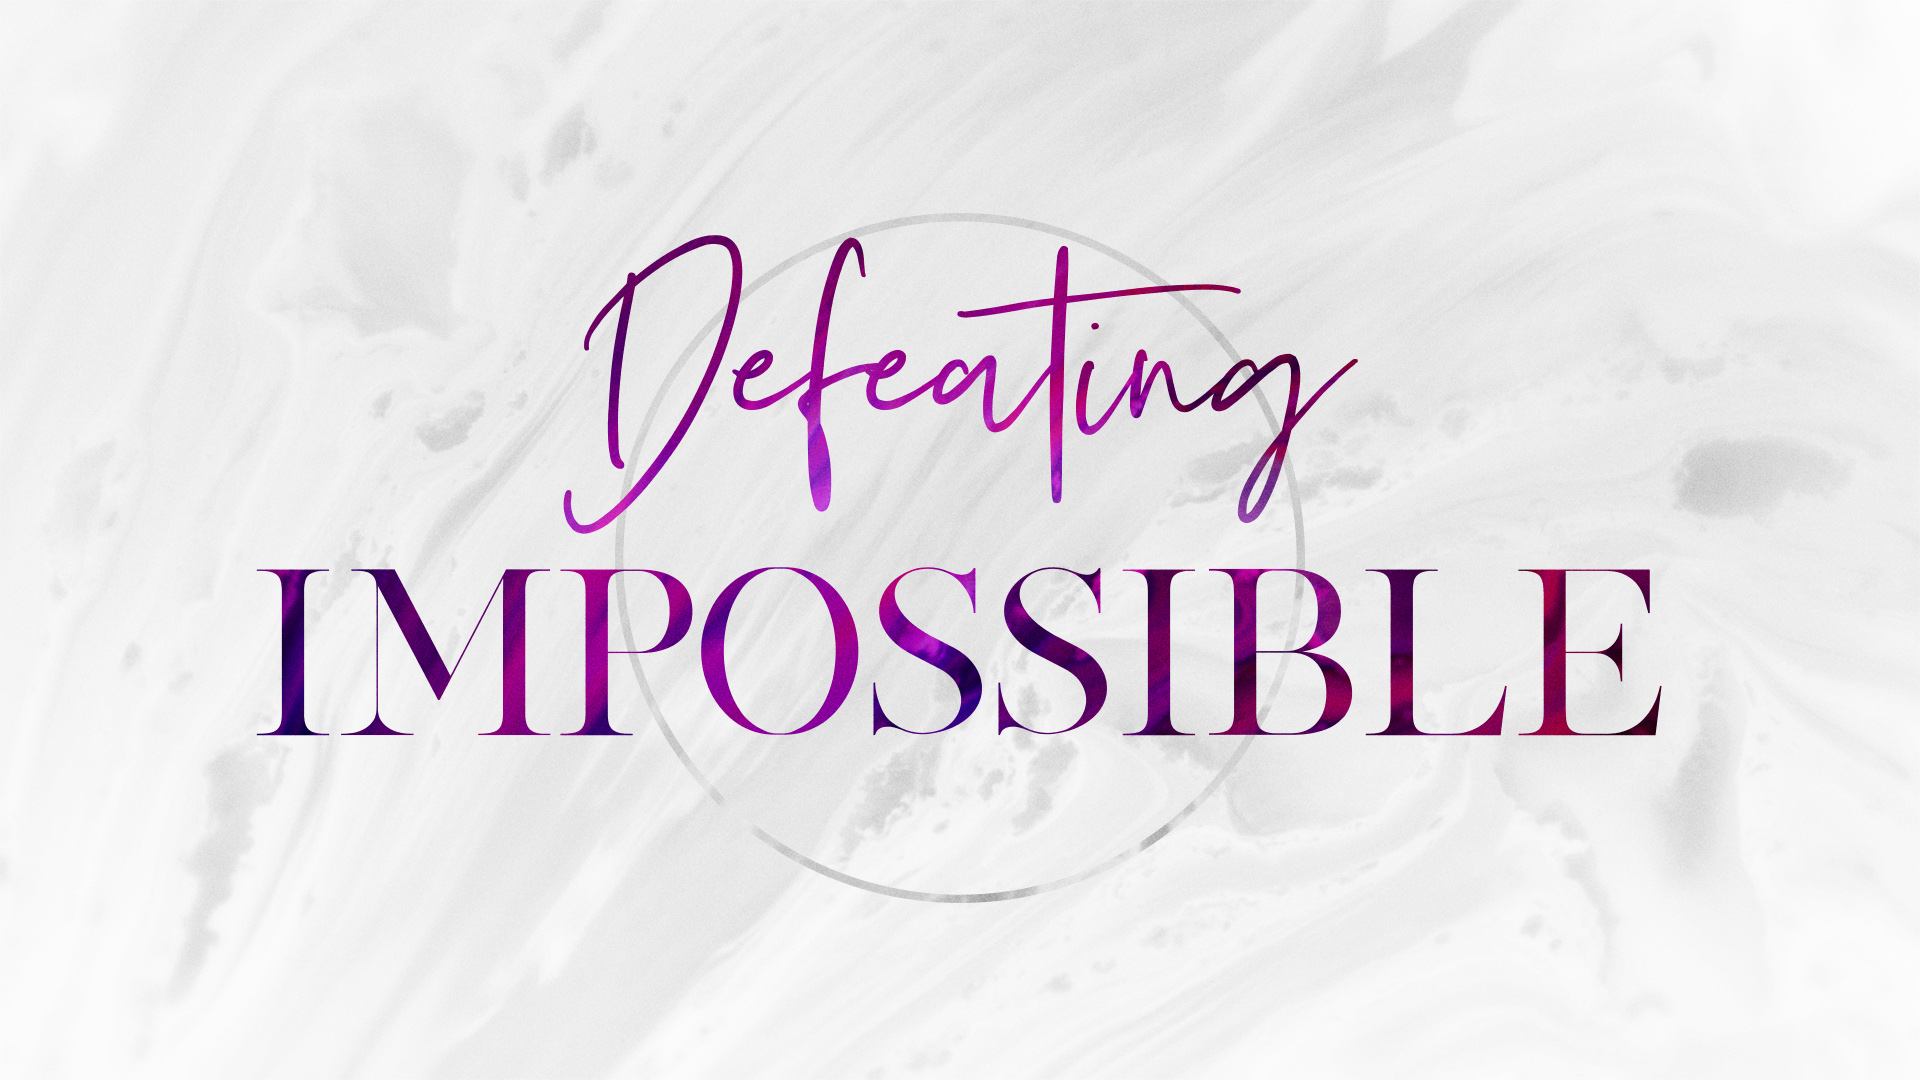 Defeating Impossible - 11:30am Service